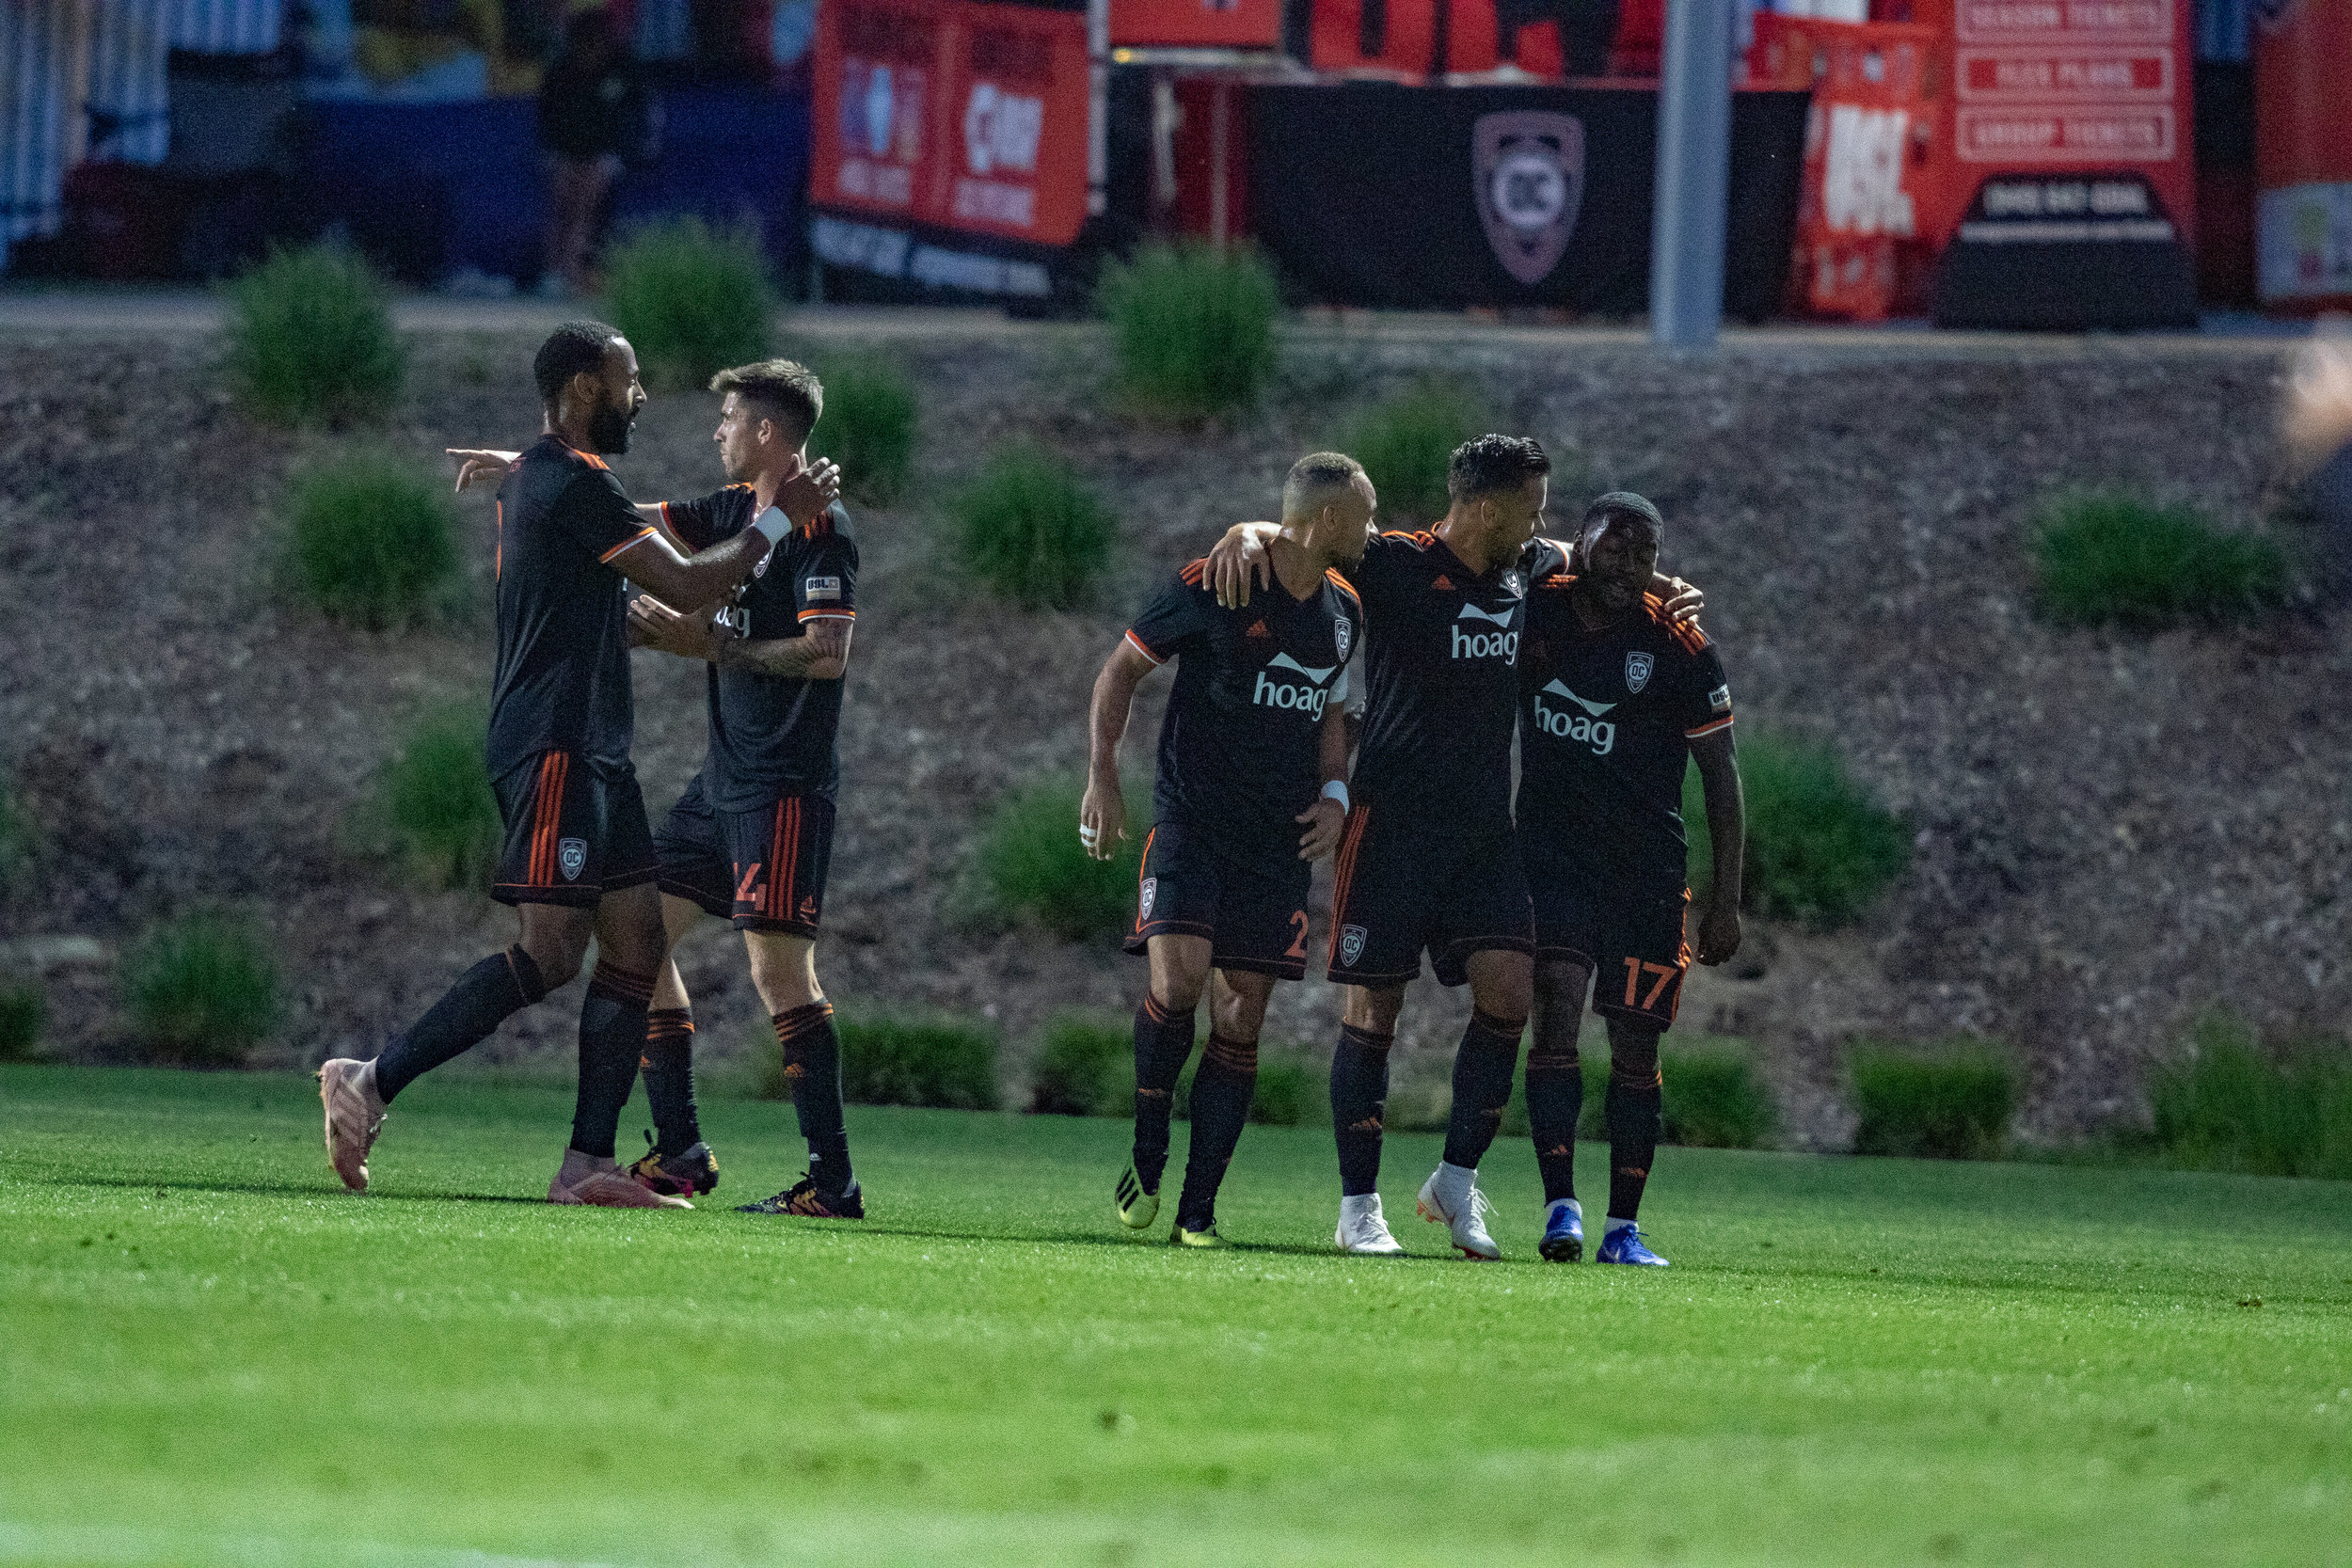 Orange County SC players celebrate after scoring a goal against Tacoma Defiance. |  Photo courtesy of Orange County SC/Liza Rosales